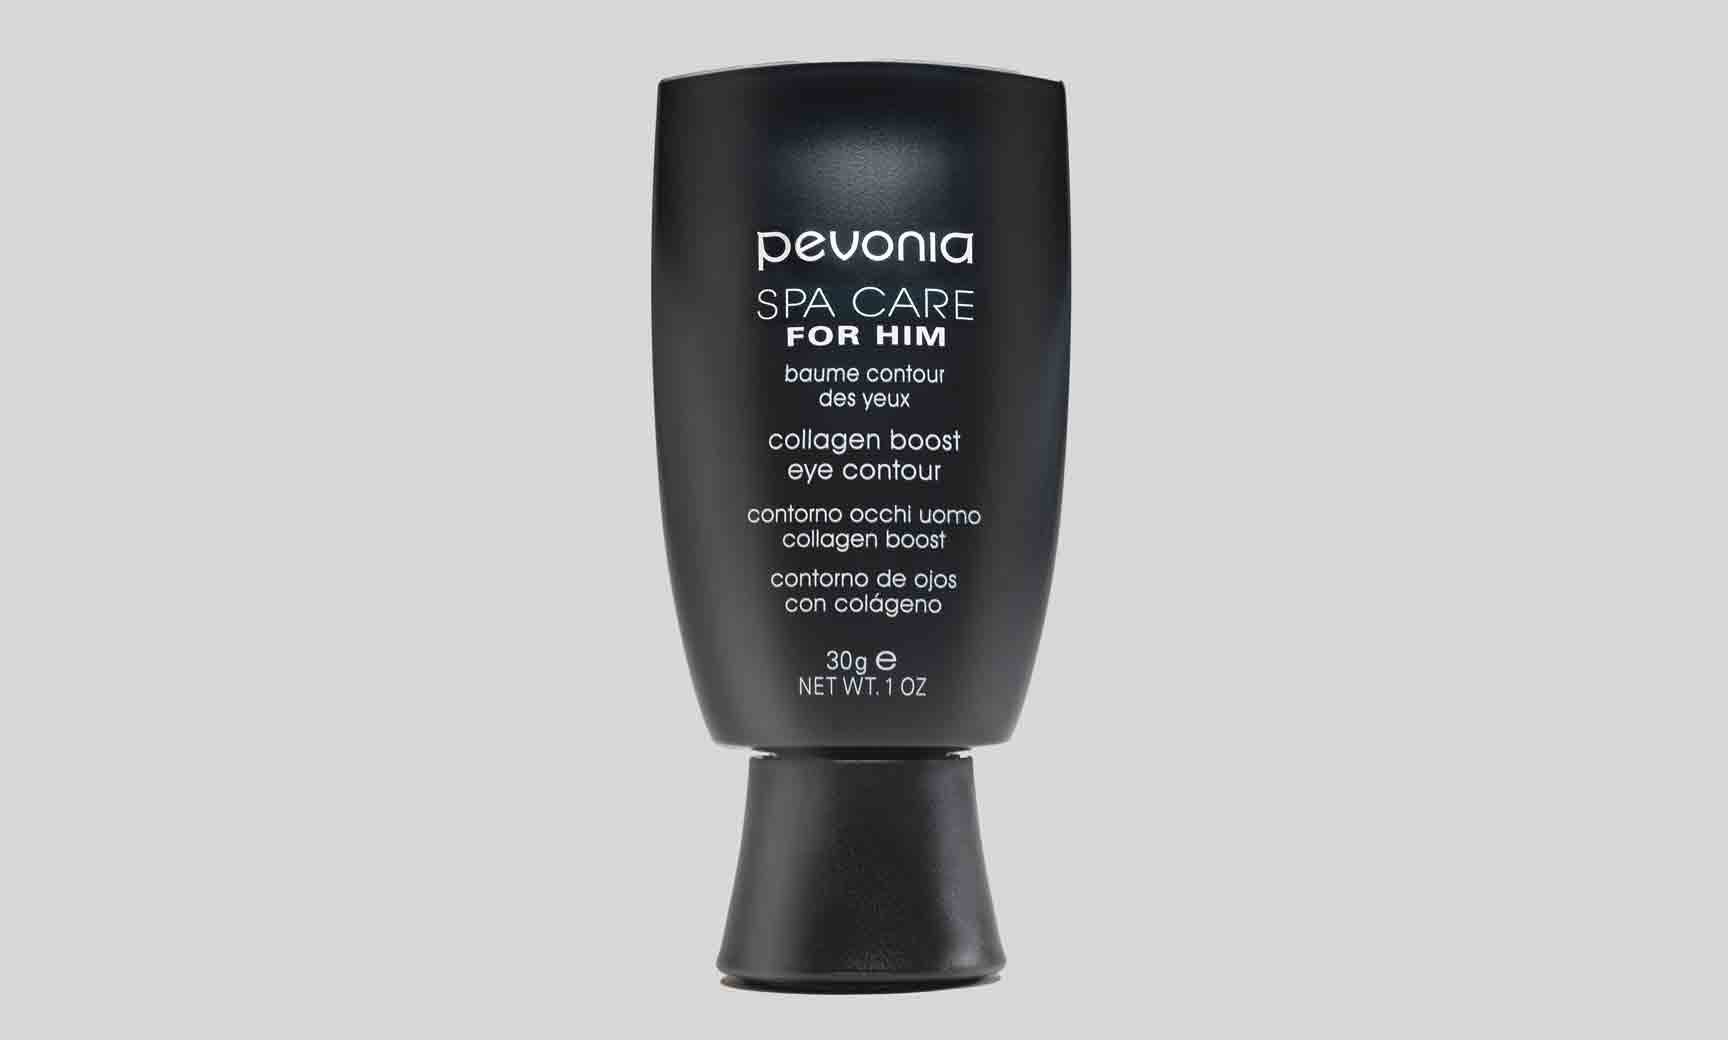 Pevonia Spa Care for Him Collagen Boost  Eye Contour